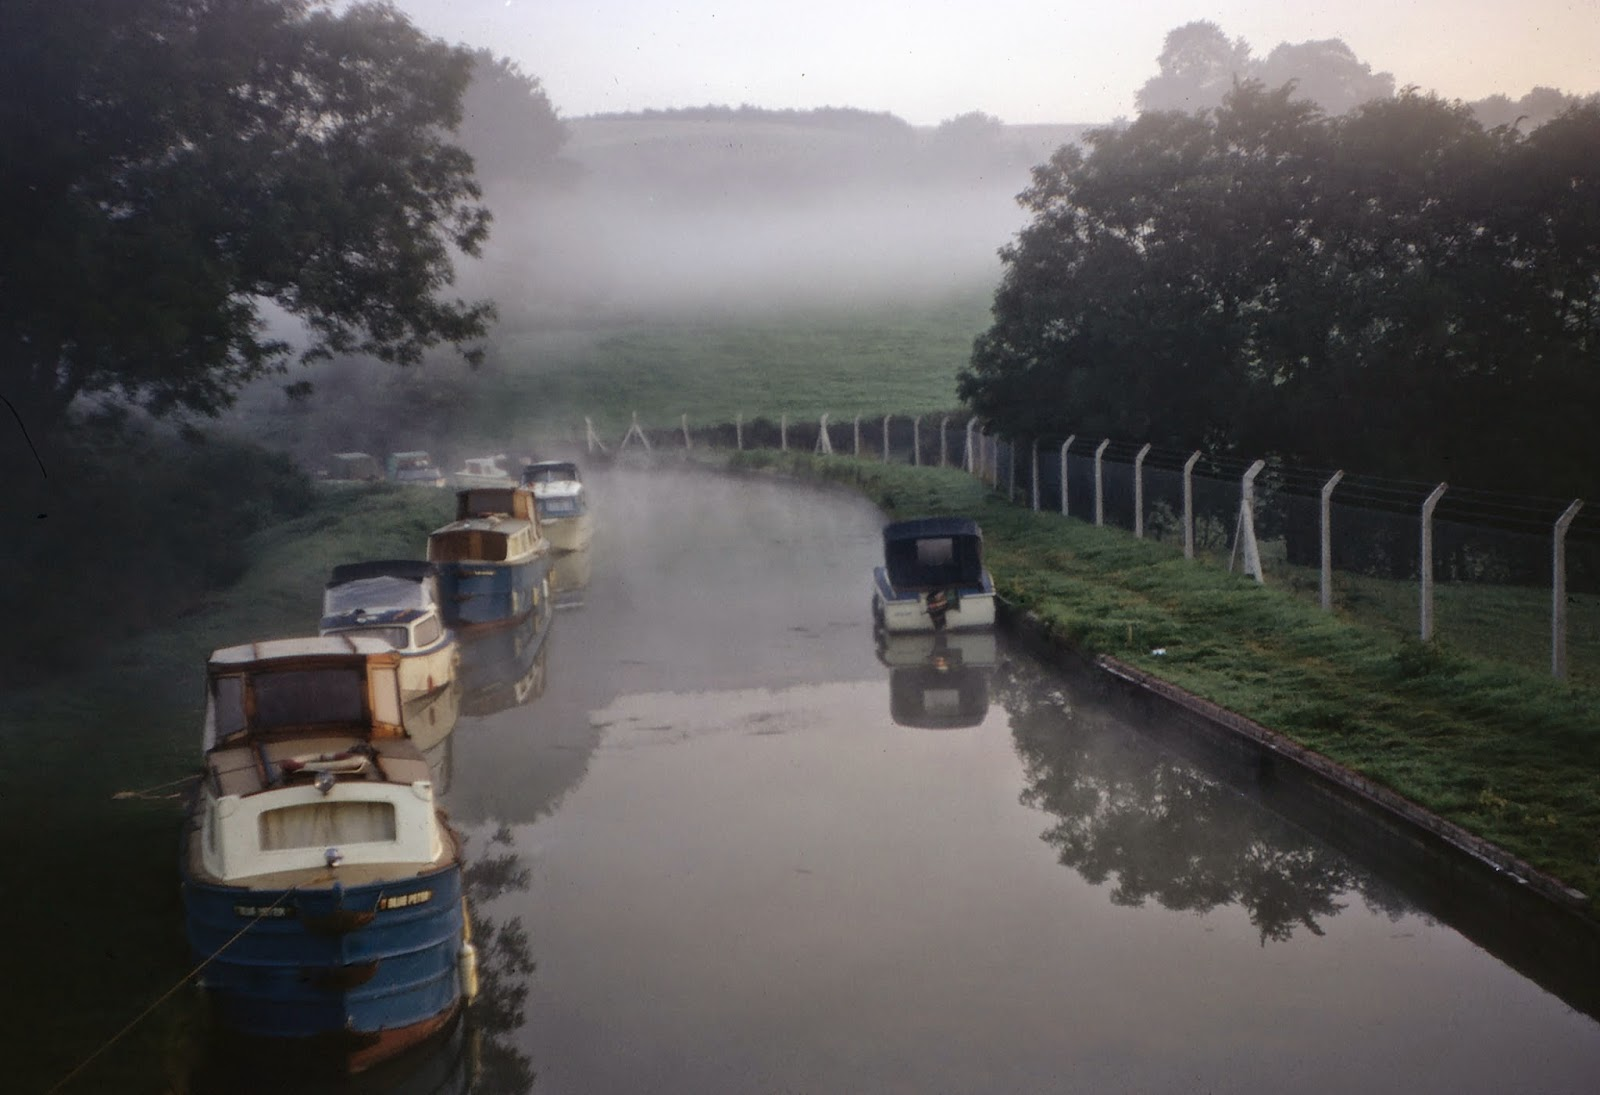 Misty morning at Napton